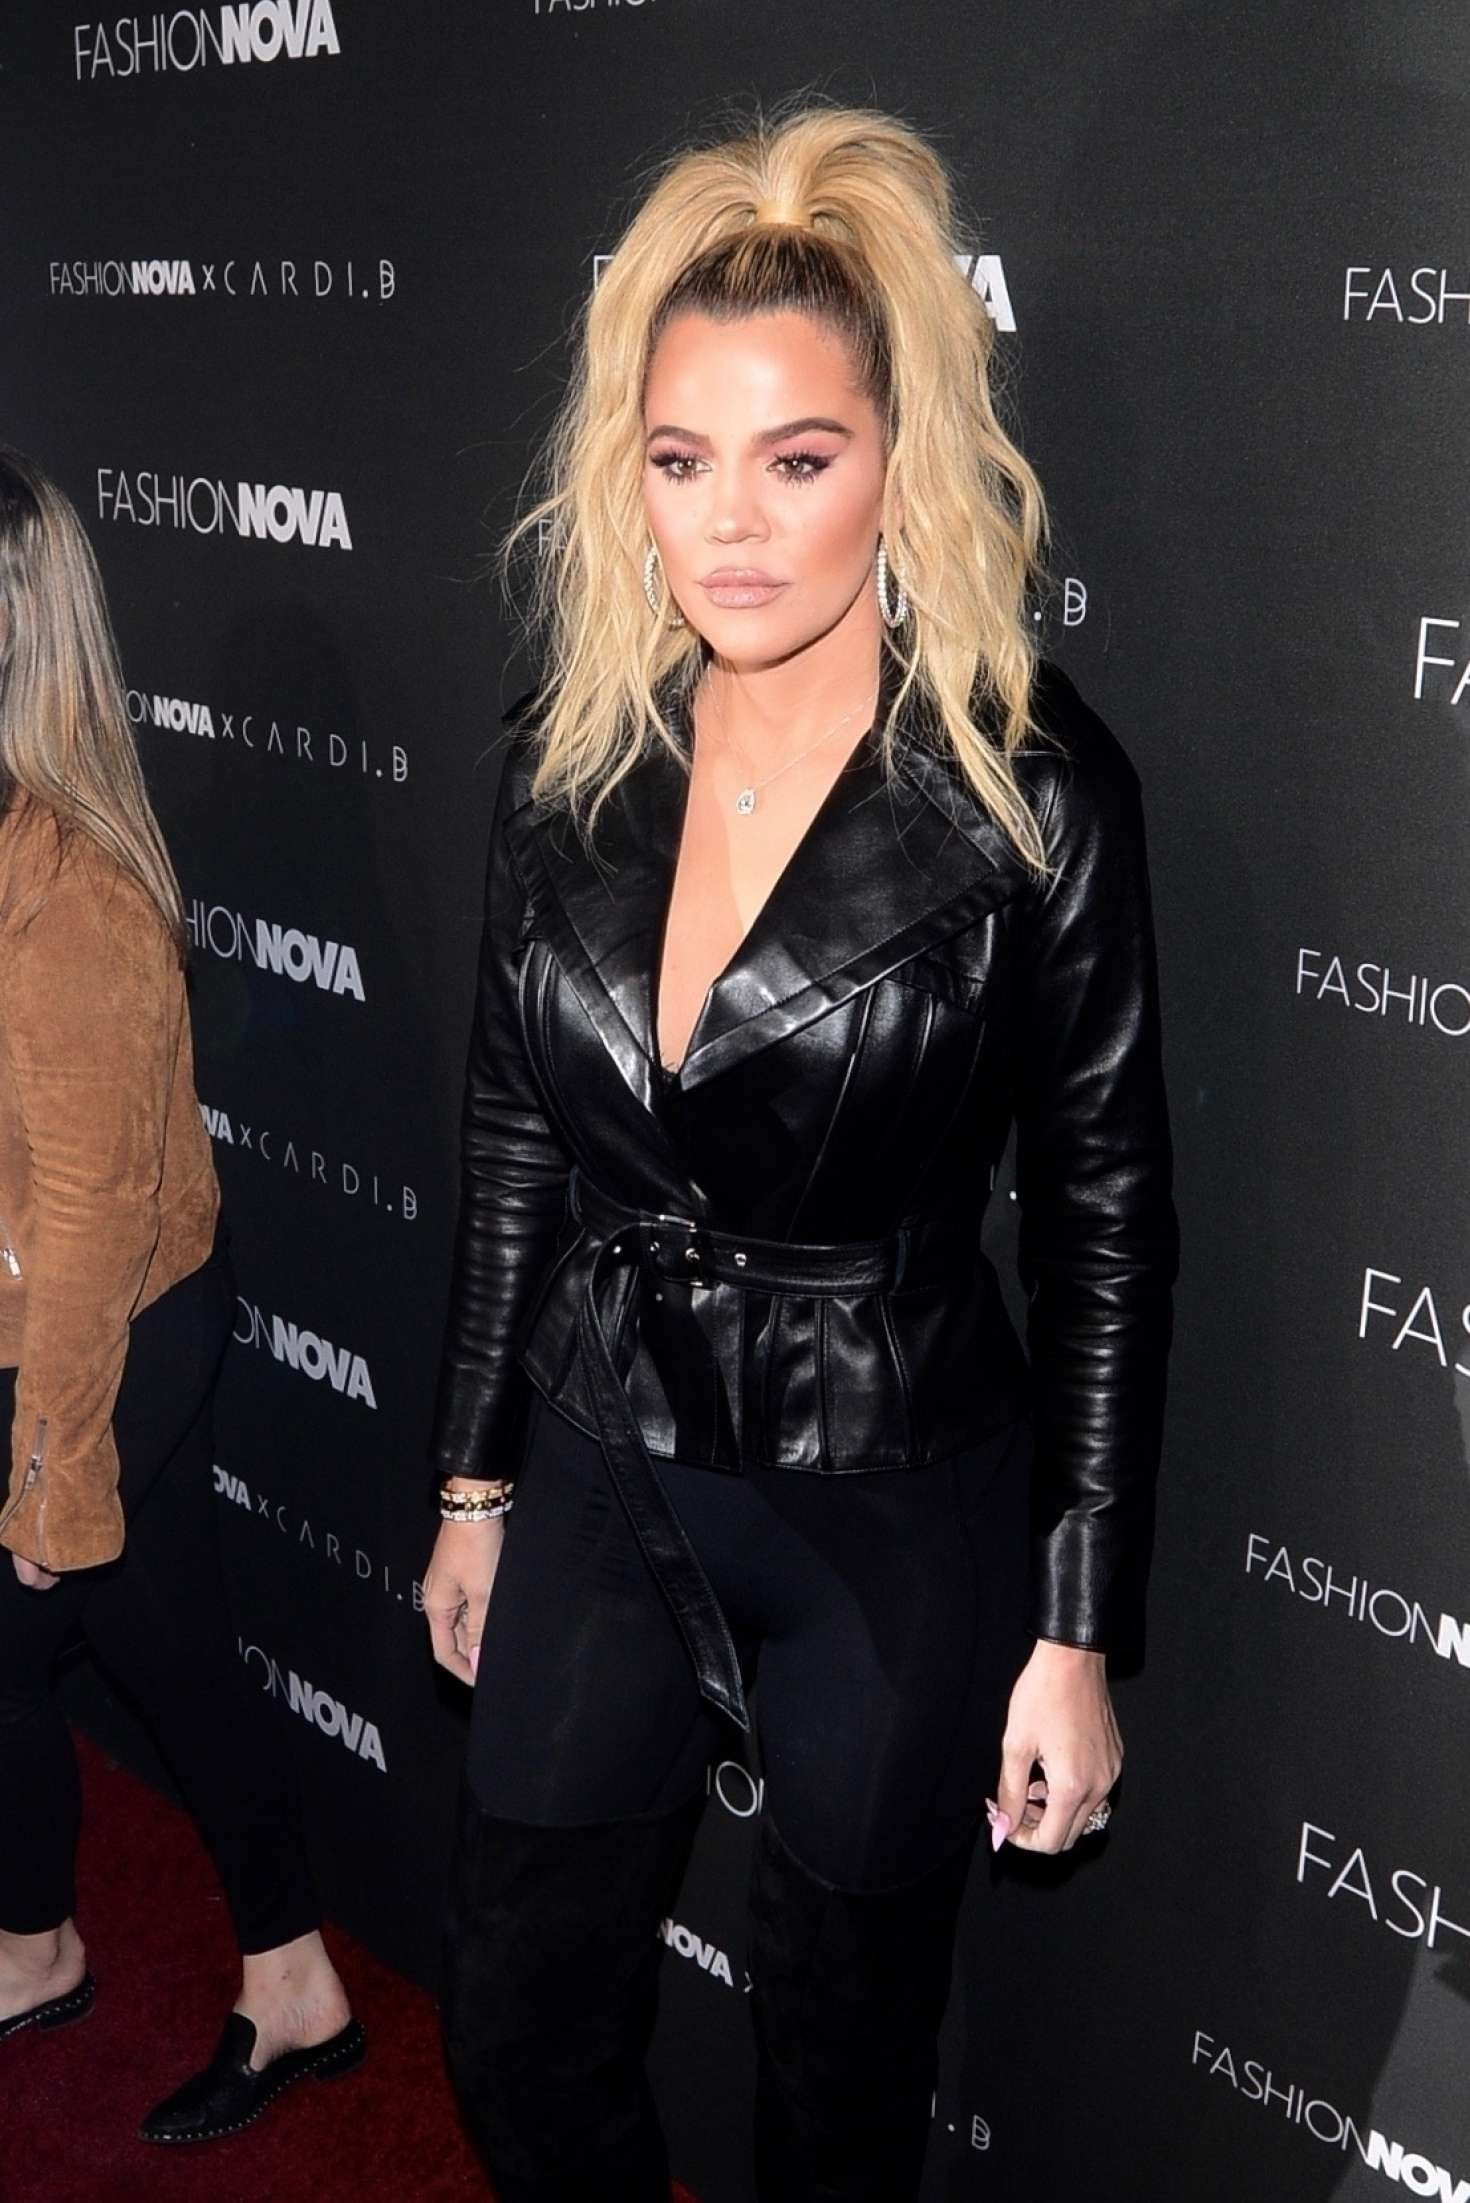 Khloe Kardashian – Fashion Nova x Cardi B Event in Hollywood